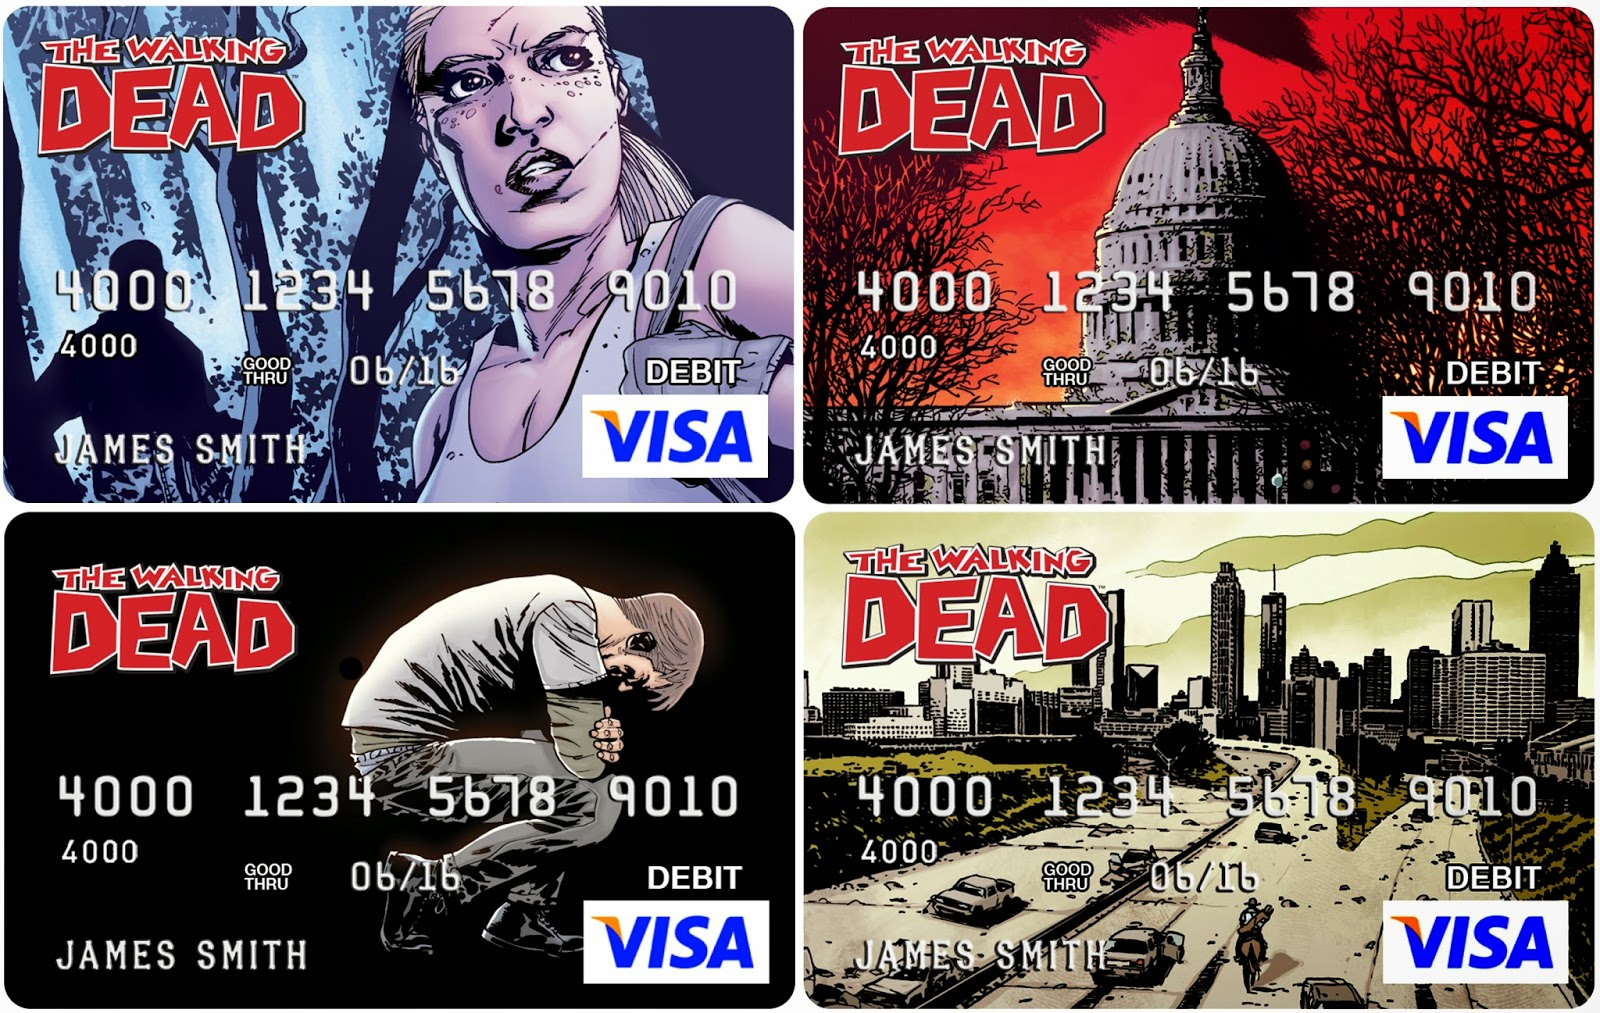 The Walking Dead Themed VISA Debit Cards from Cards.com